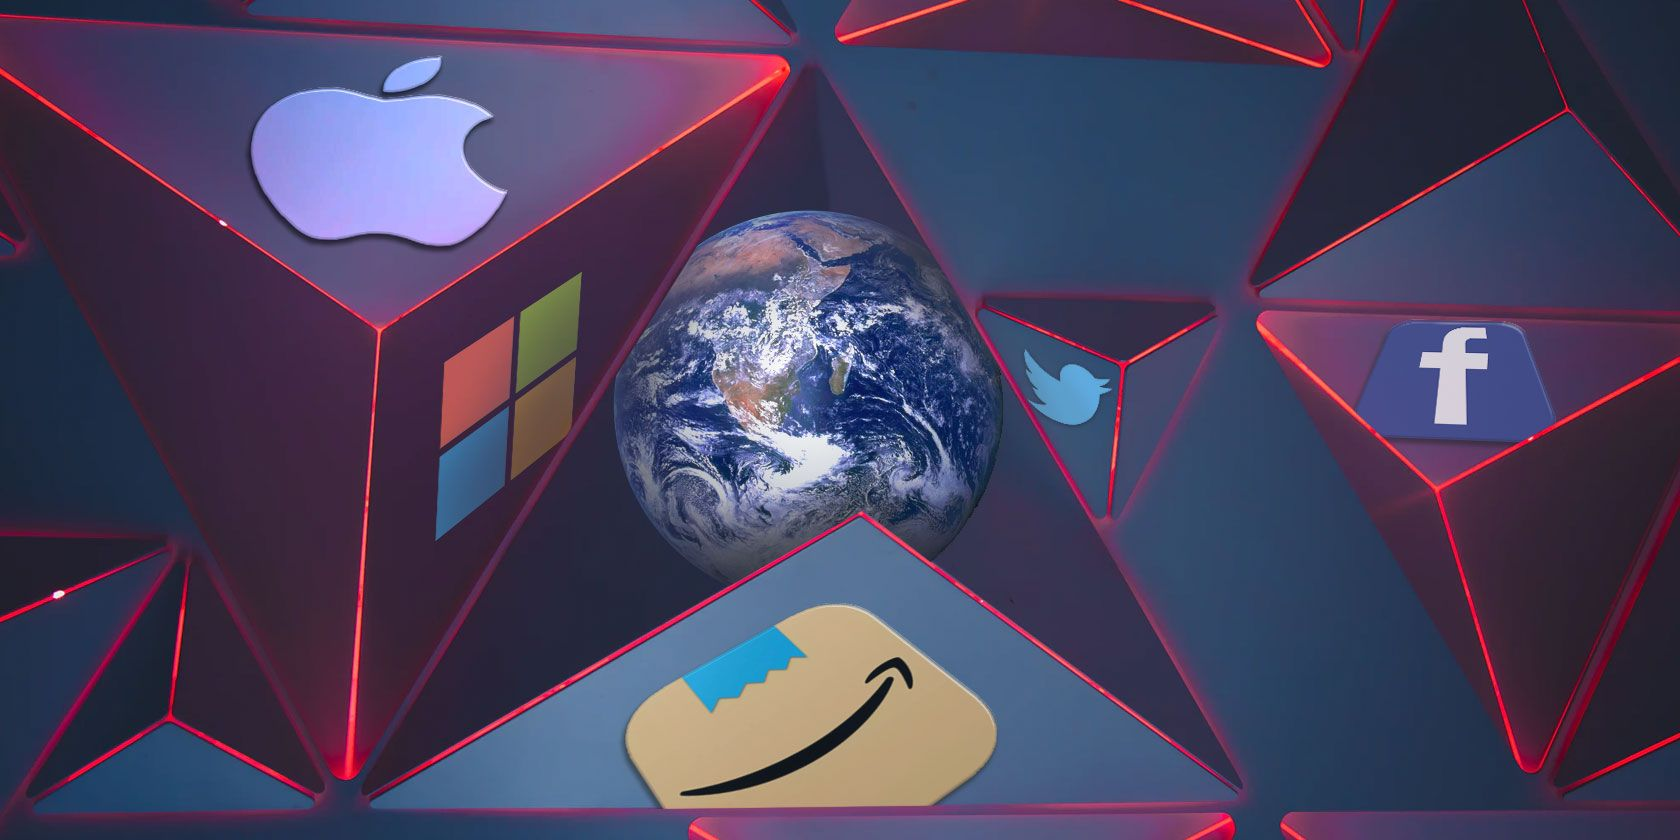 The Most Iconic Tech Company Logos: How Many Do You Recognize?